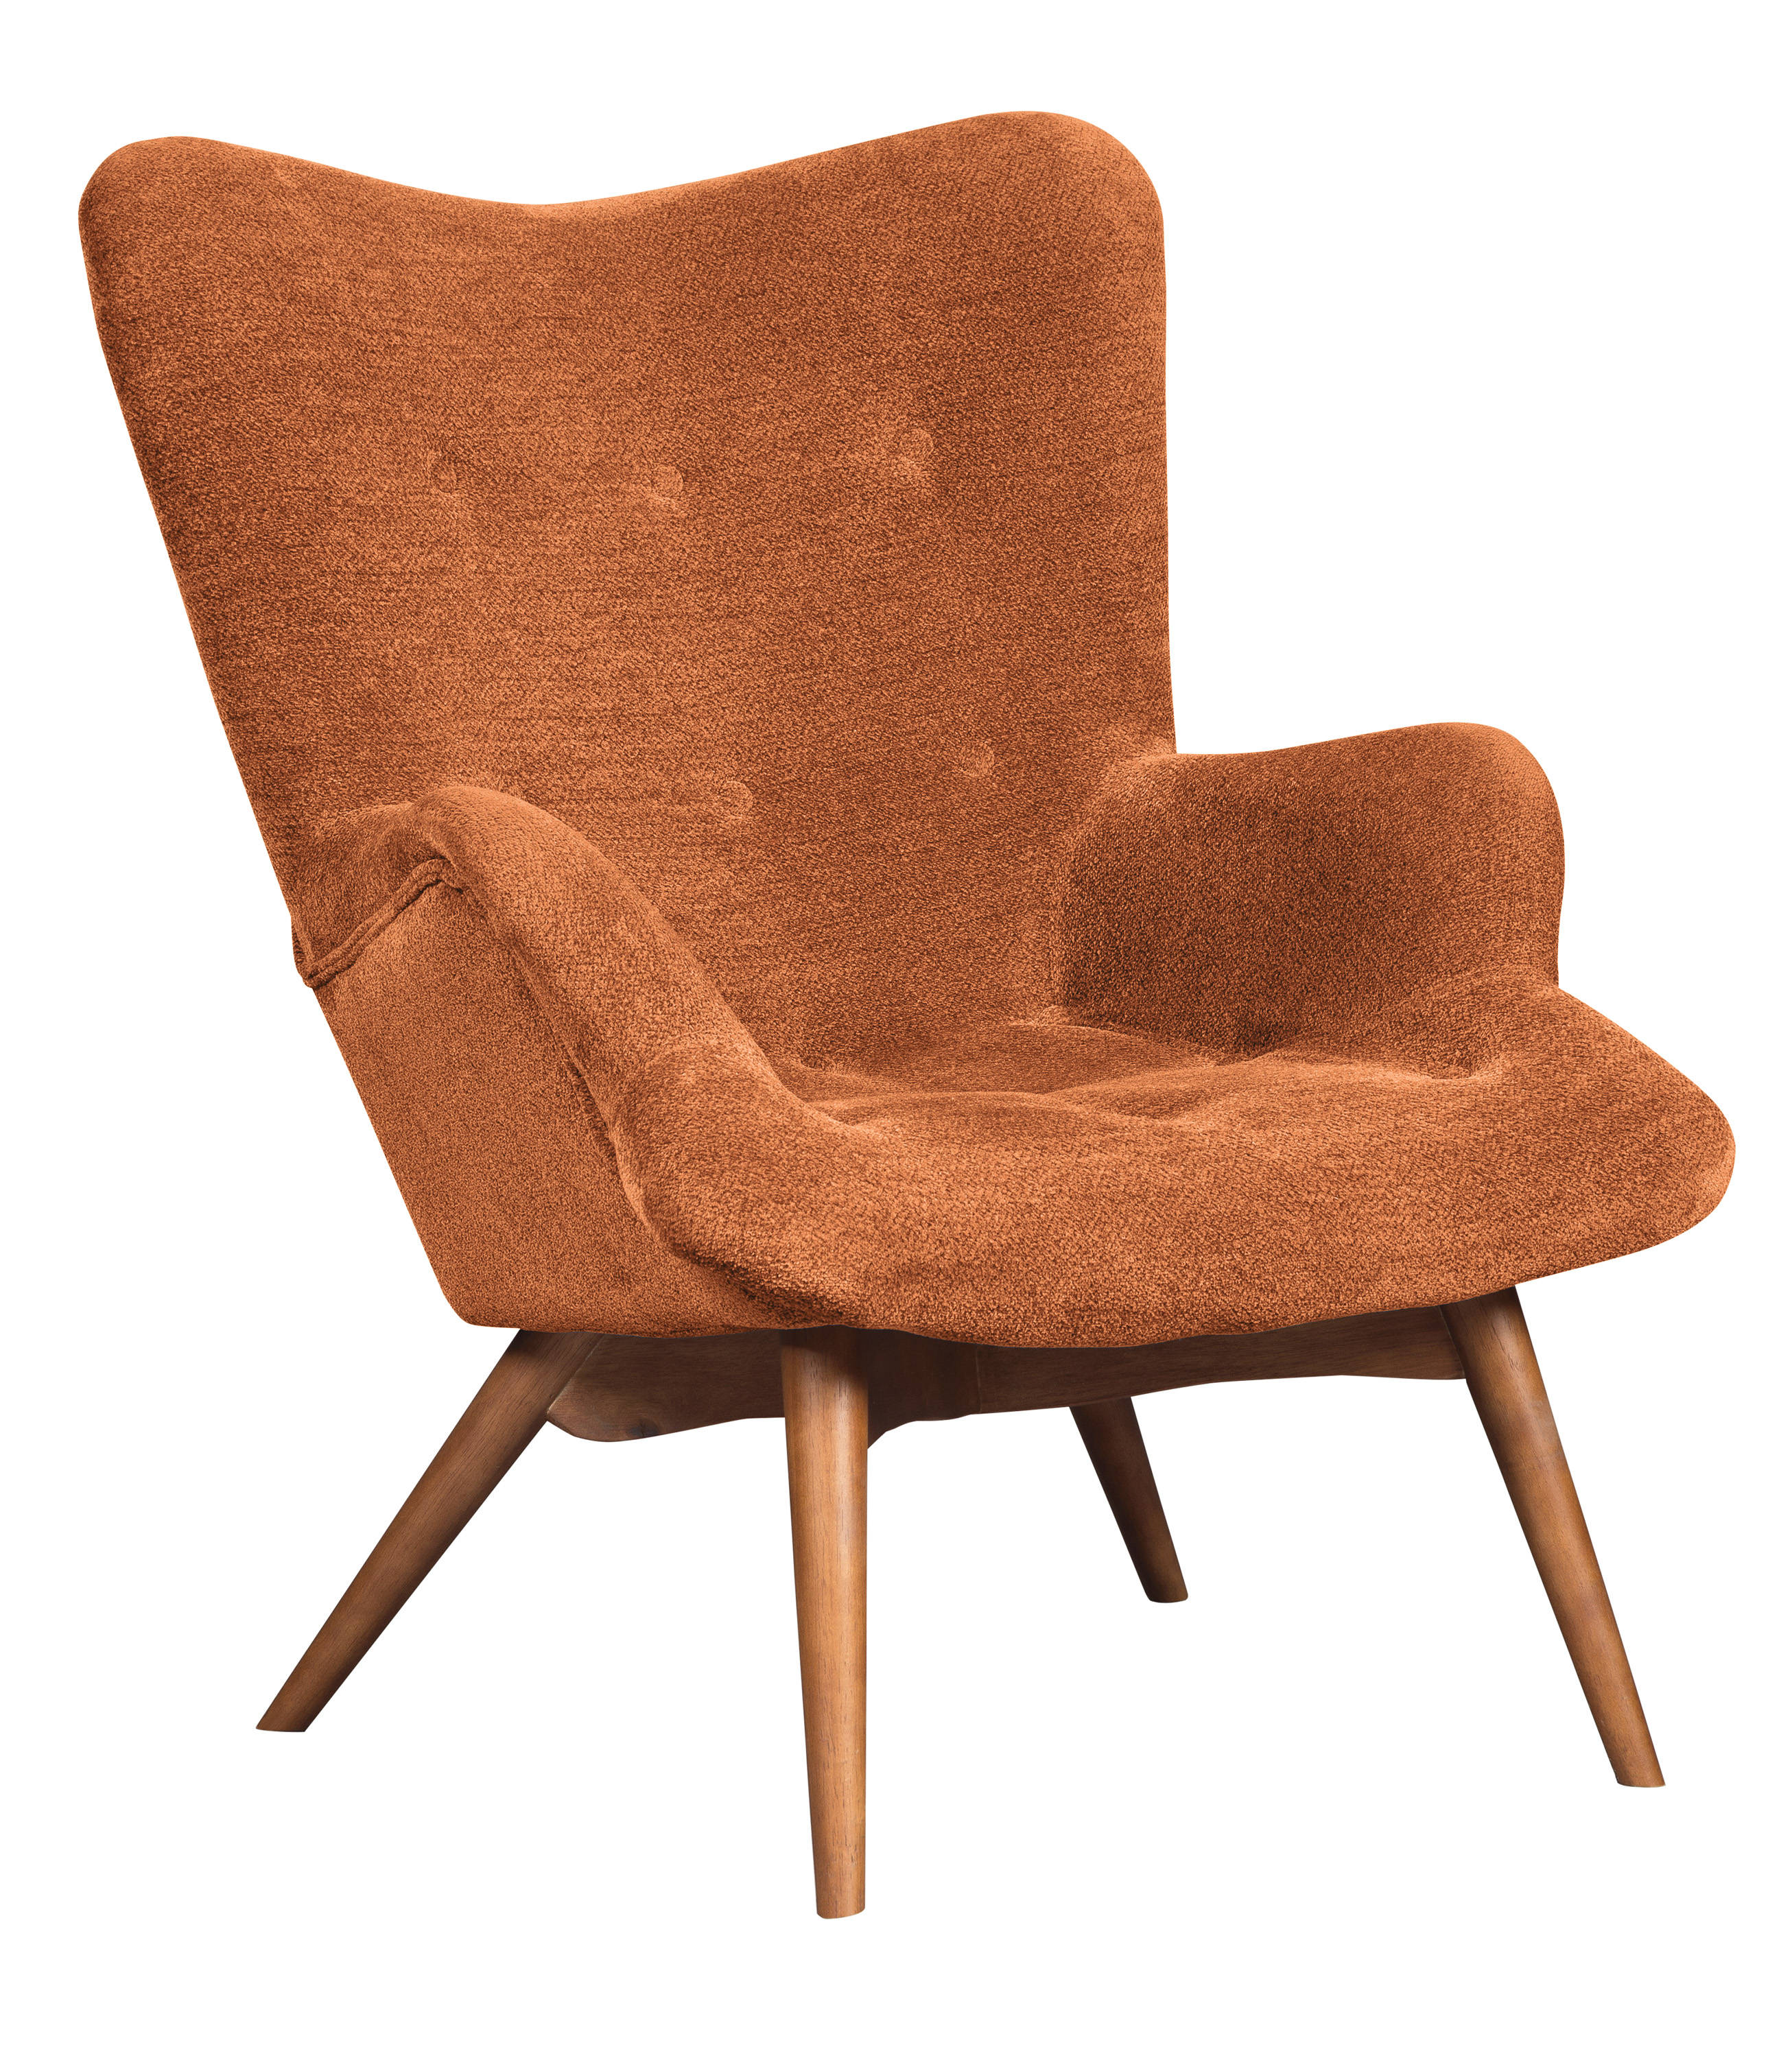 Ashley Furniture Pelsor Orange Accent Chair The Classy Home